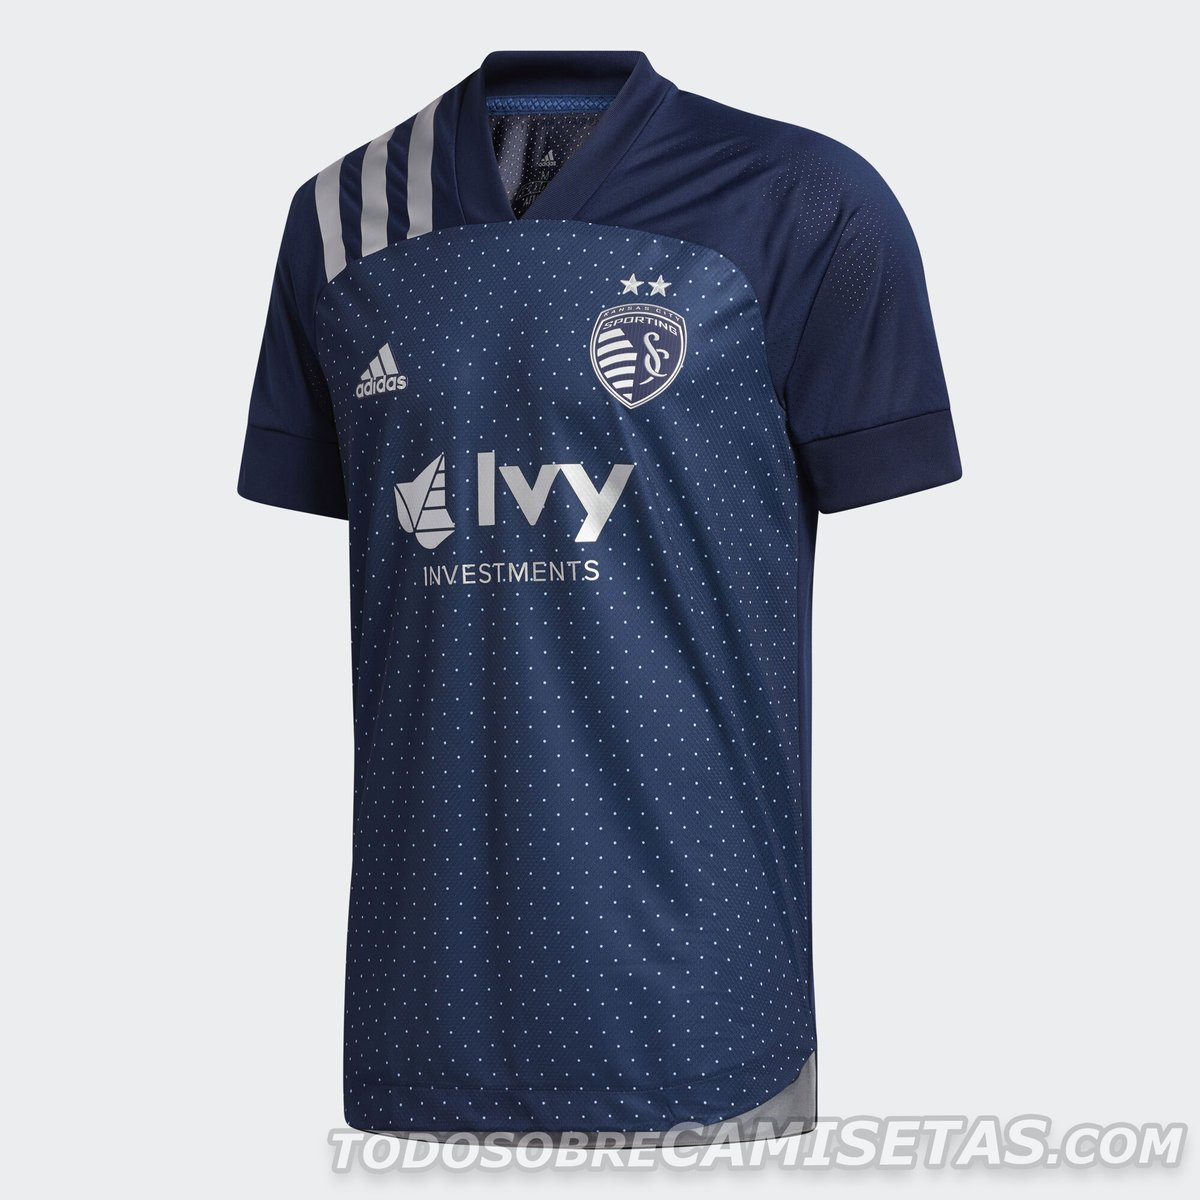 Sporting Kansas City 2020 away kit